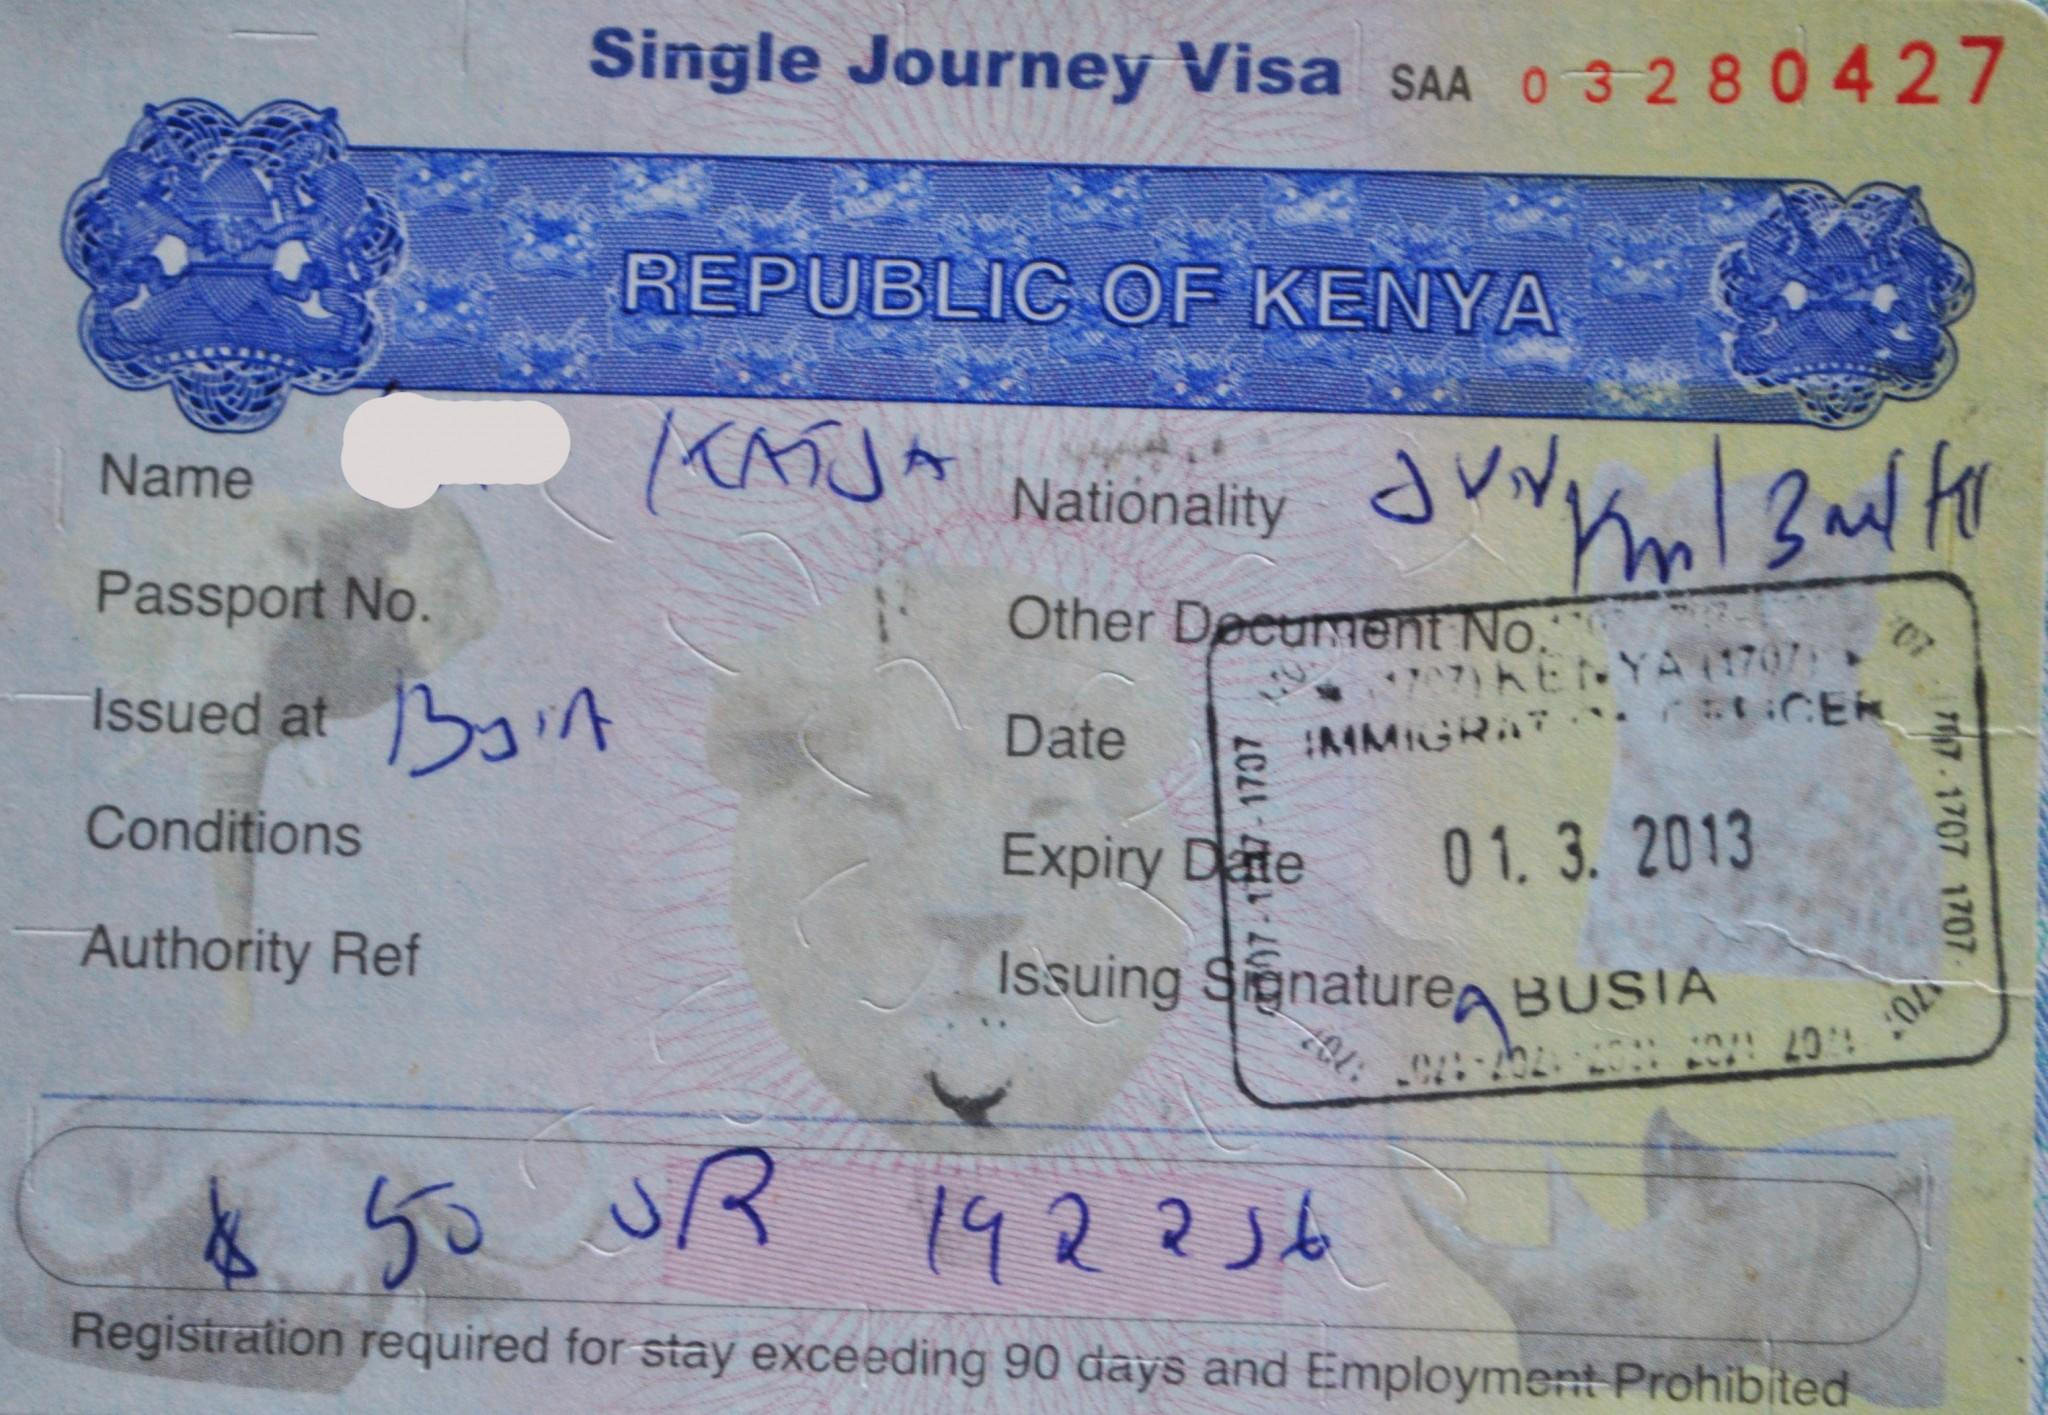 Kenya Visa Application Online Beginners Guide ...